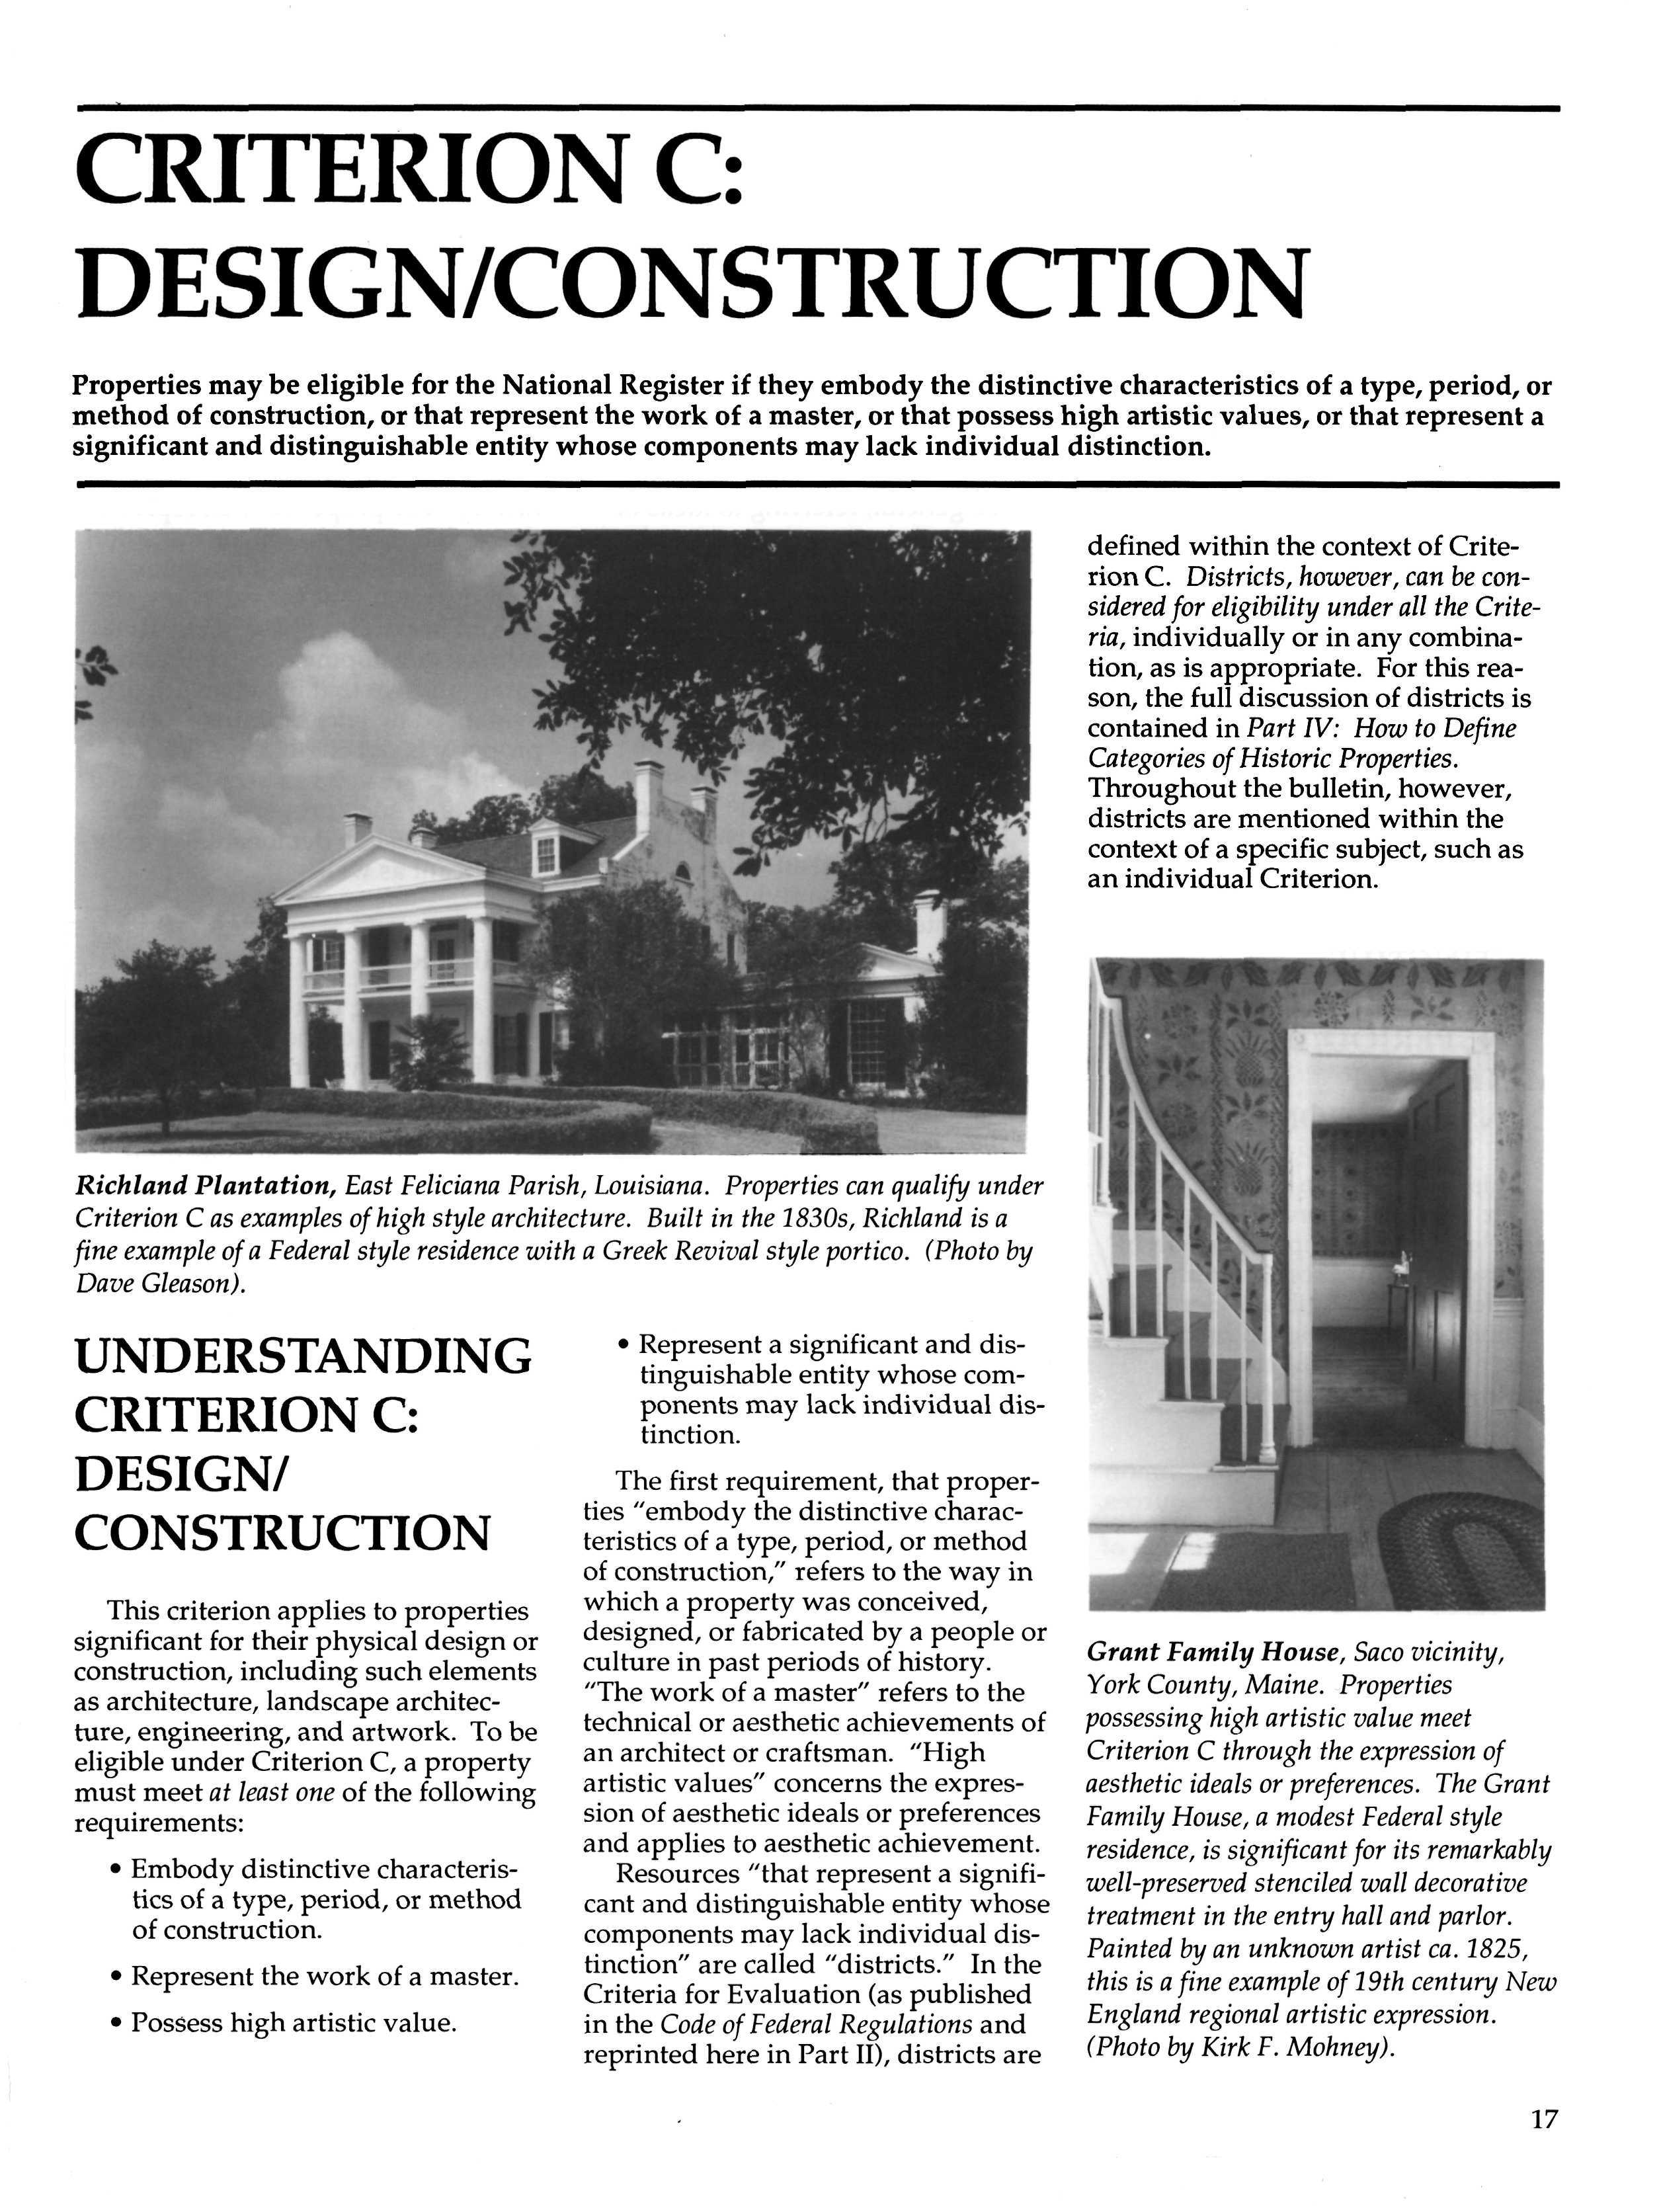 CRITERION C: DESIGN/CONSTRUCTION Properties may be eligible for the National Register if they embody the distinctive characteristics of a type, period, or method of construction, or that represent